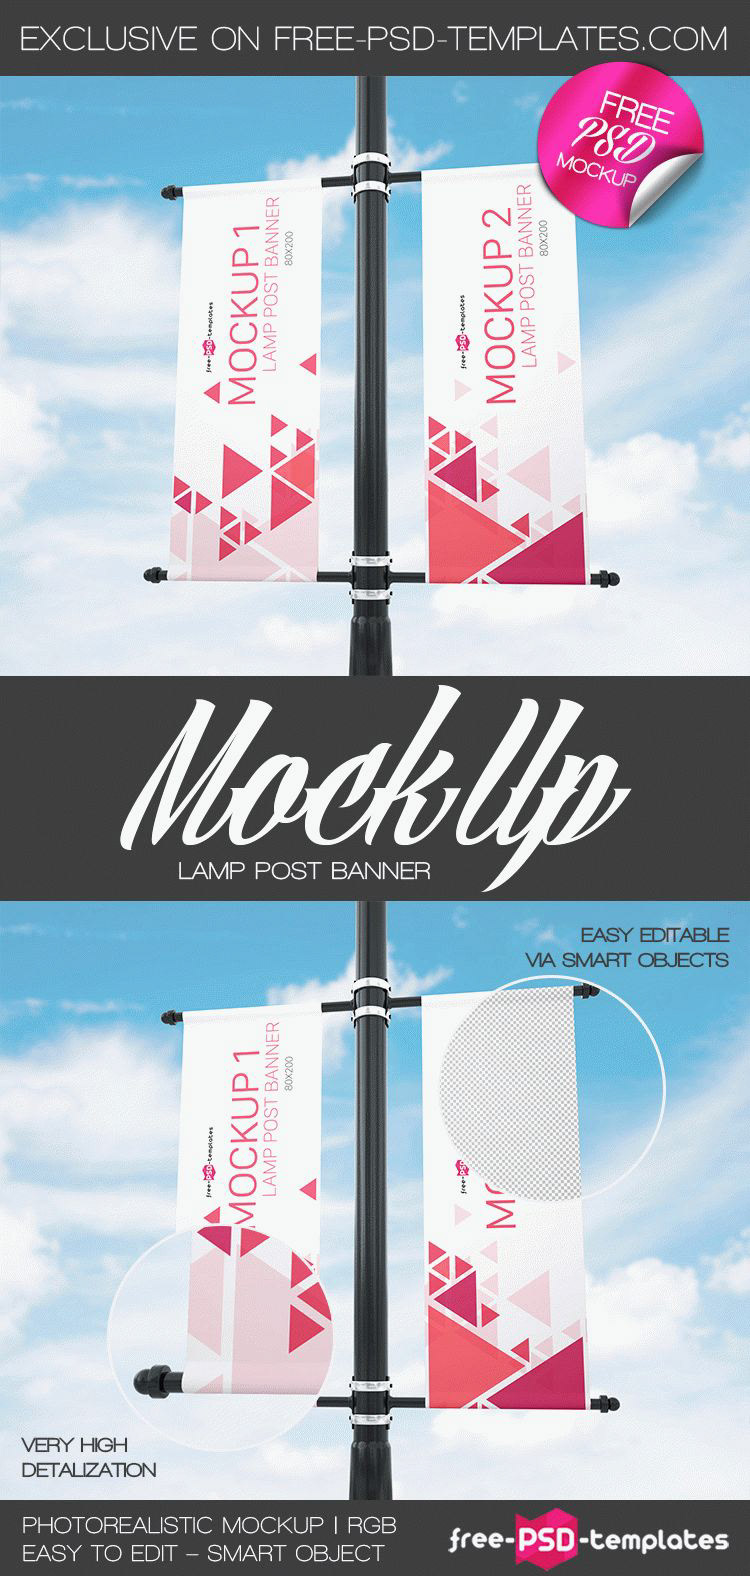 Free Lamp Post Banner Mock Up In Psd On Behance